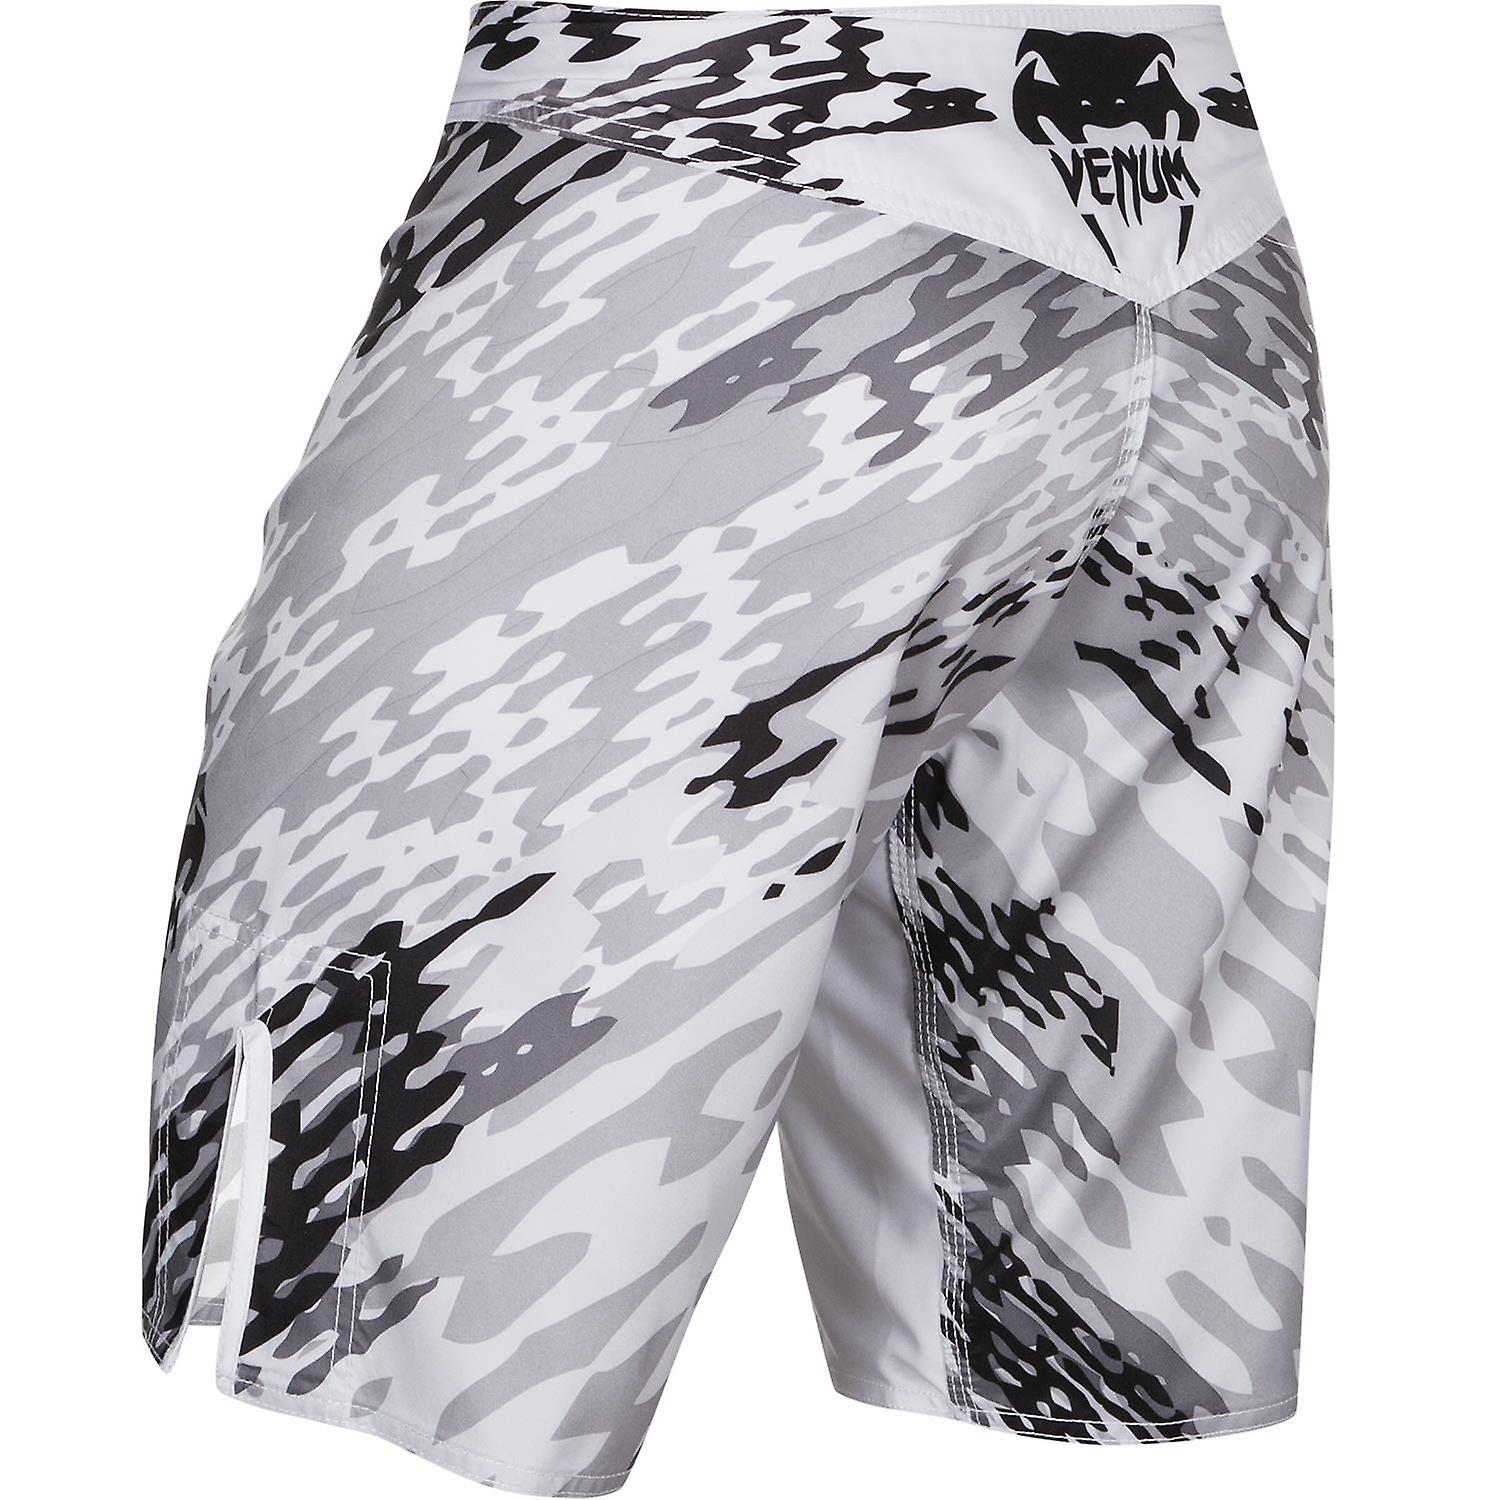 43 Best MMA Accessories images | Mma, Clothes, Adidas